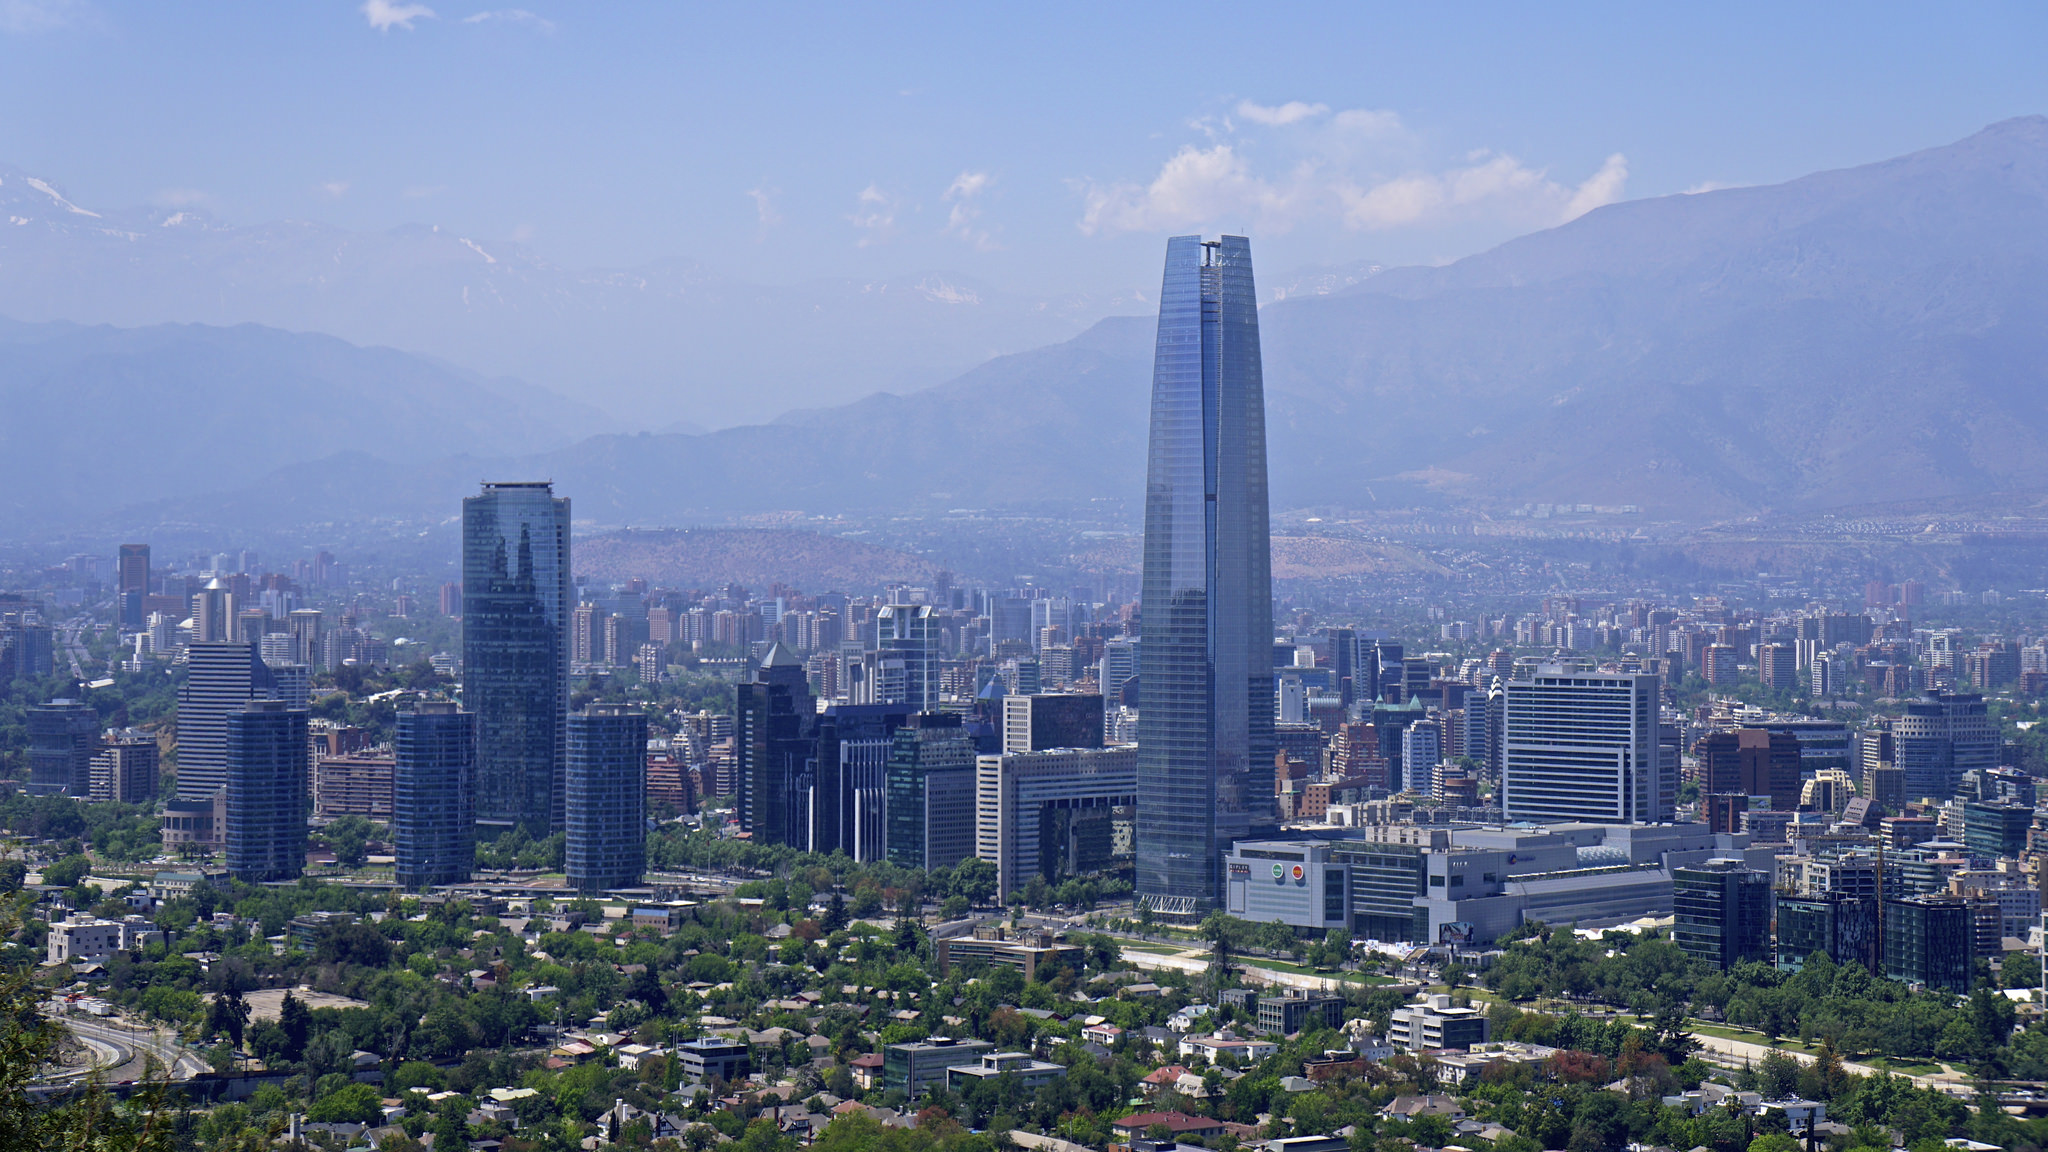 Scenic Attractions additionally Santiago Chile Skyline likewise N'Djamena Map Satellite Google further Adelaide Australia Map Cities besides Maldives Map. on world map with cities